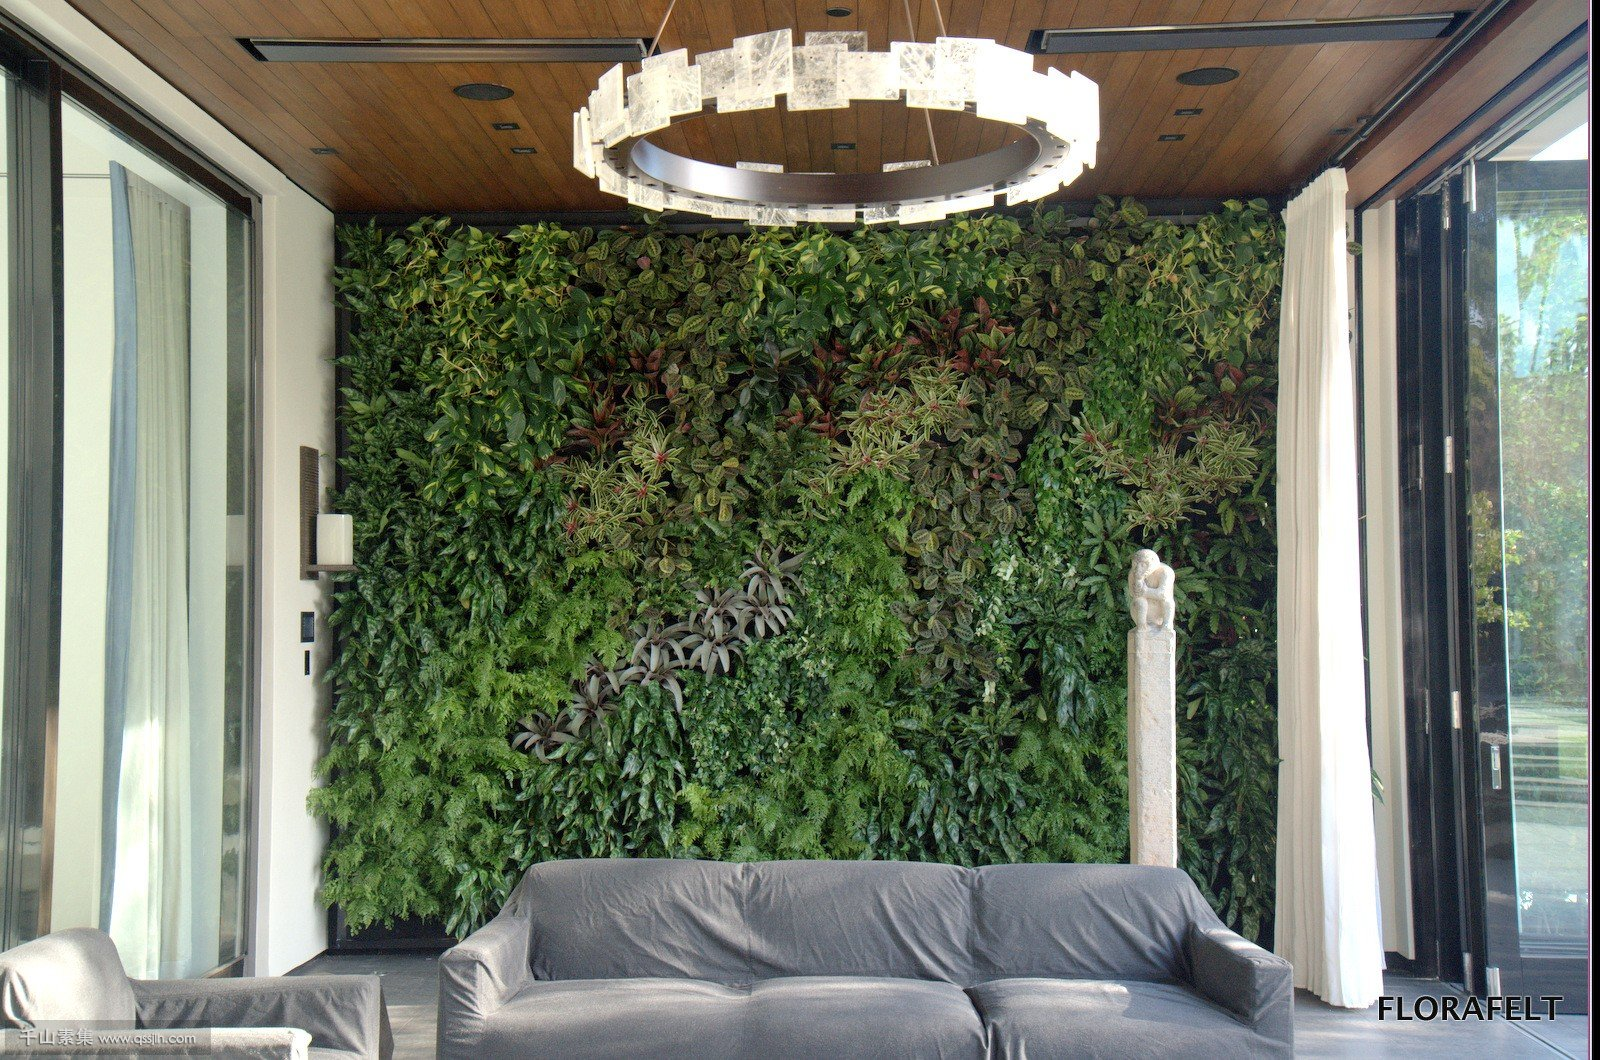 chris-bribach-plants-on-walls-beverly-hills-florafelt-vertical-garden-2.jpg